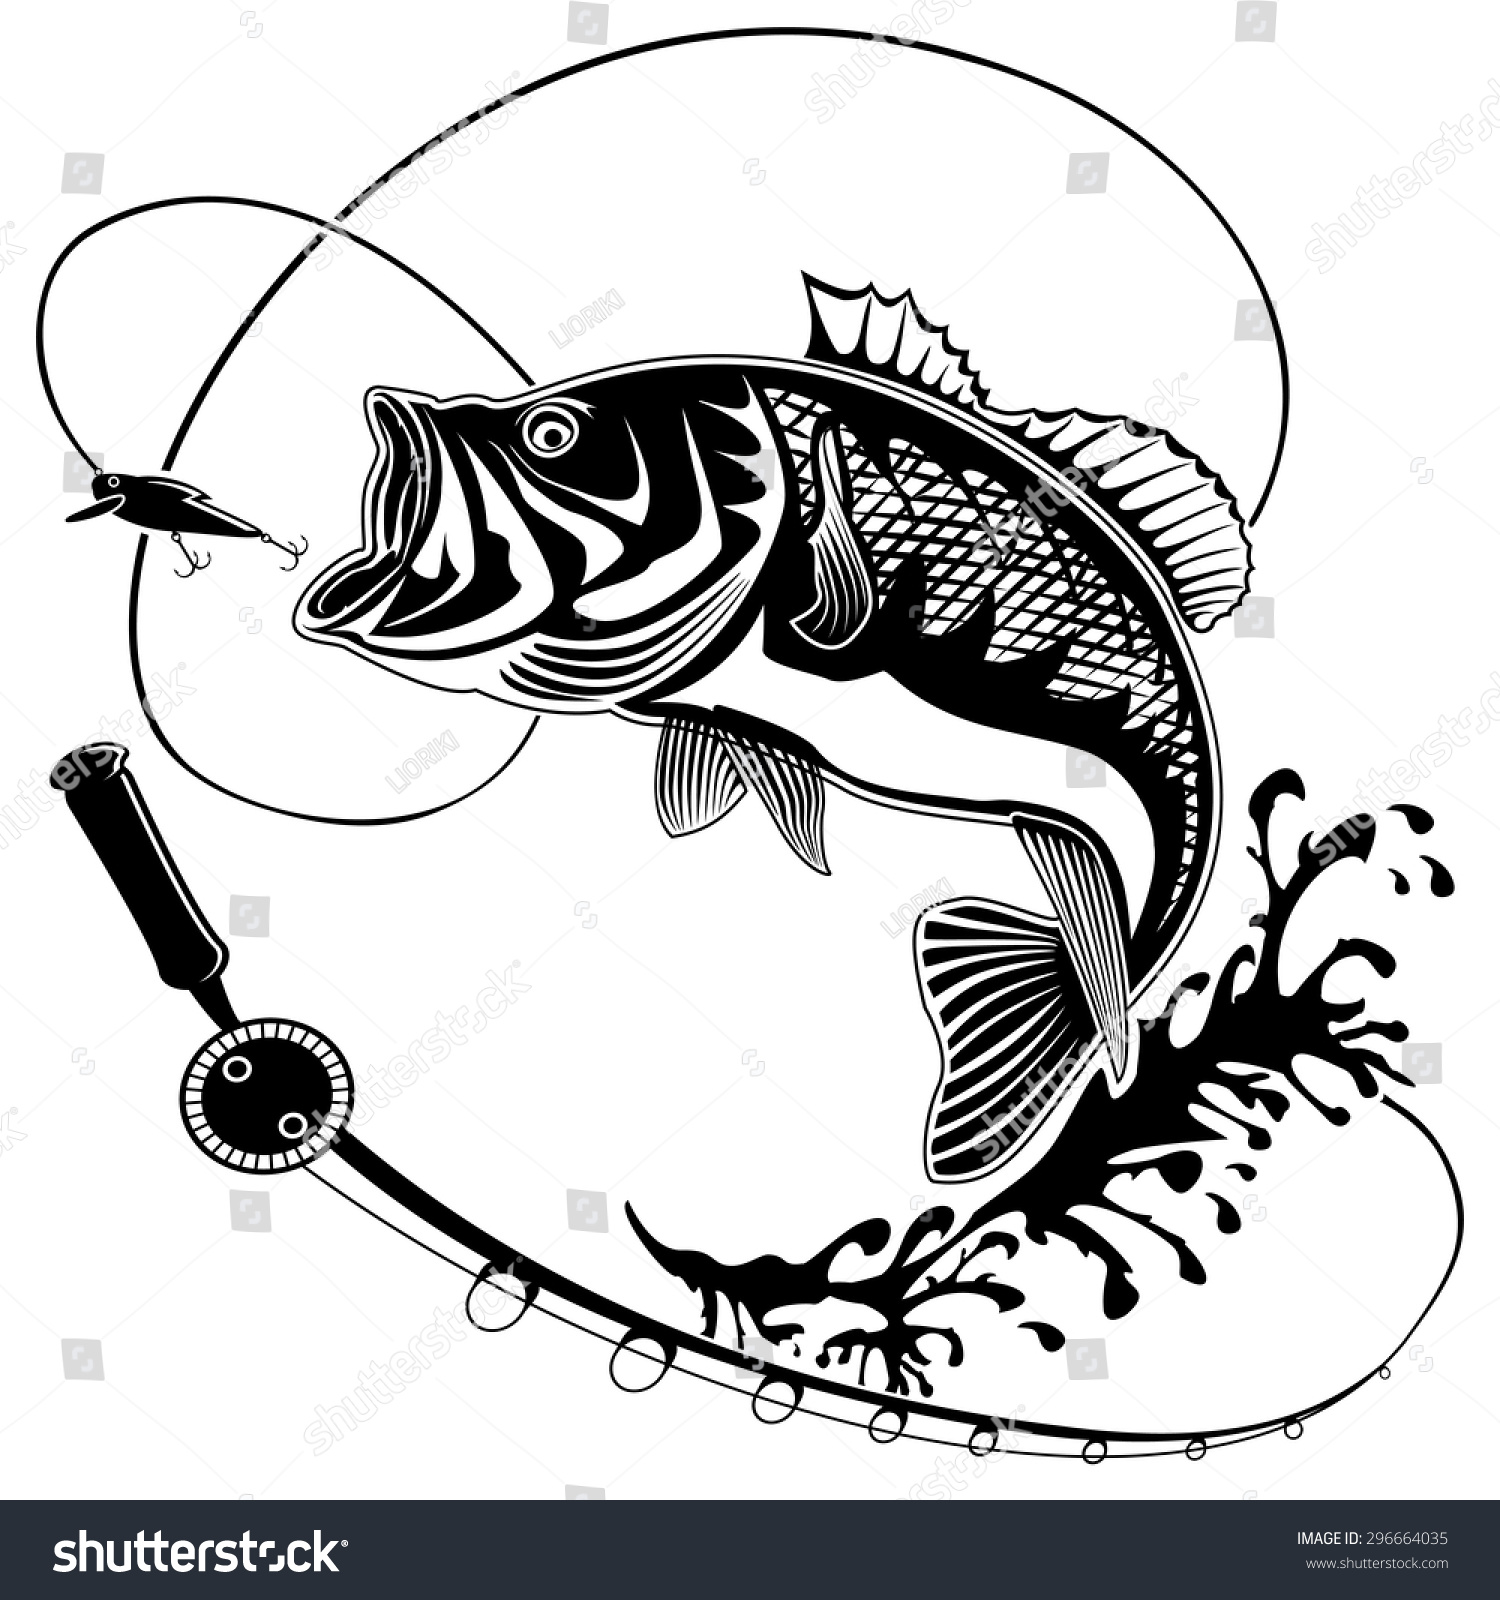 Isolated Illustration Big Peach Fish Waves Stock Vector 296664035 ...